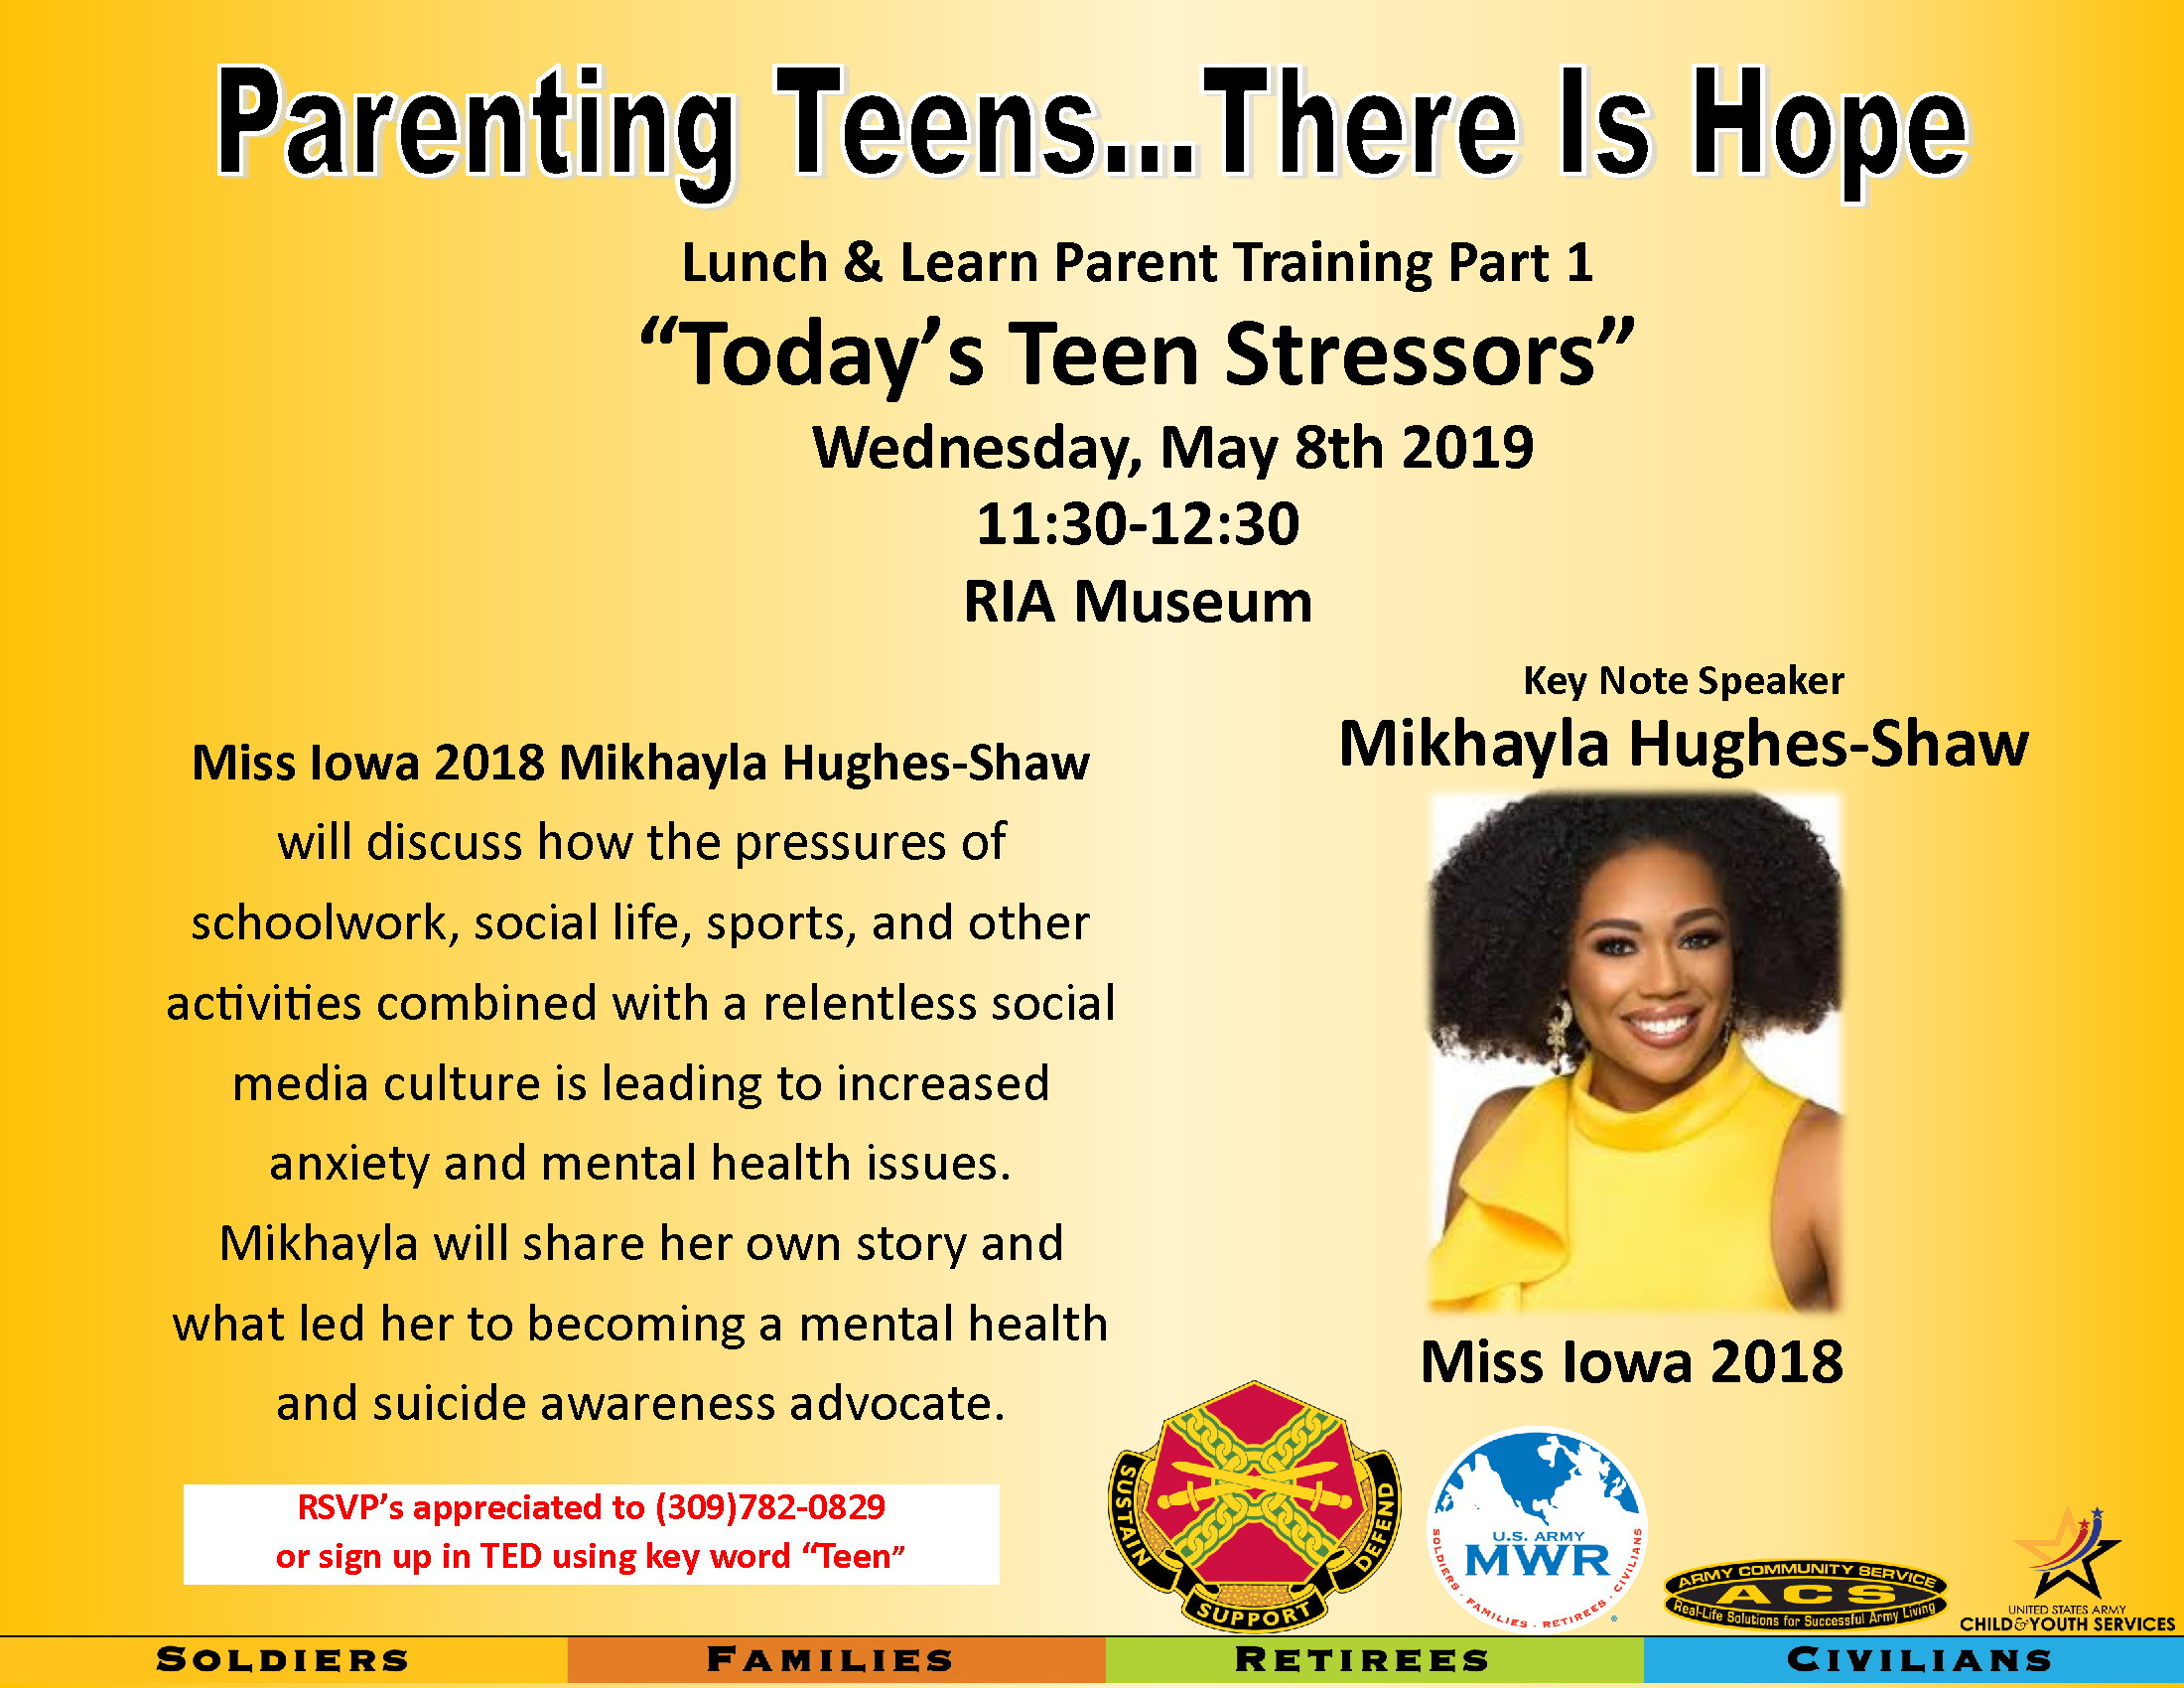 Parenting Class: Today's Teen Stressors